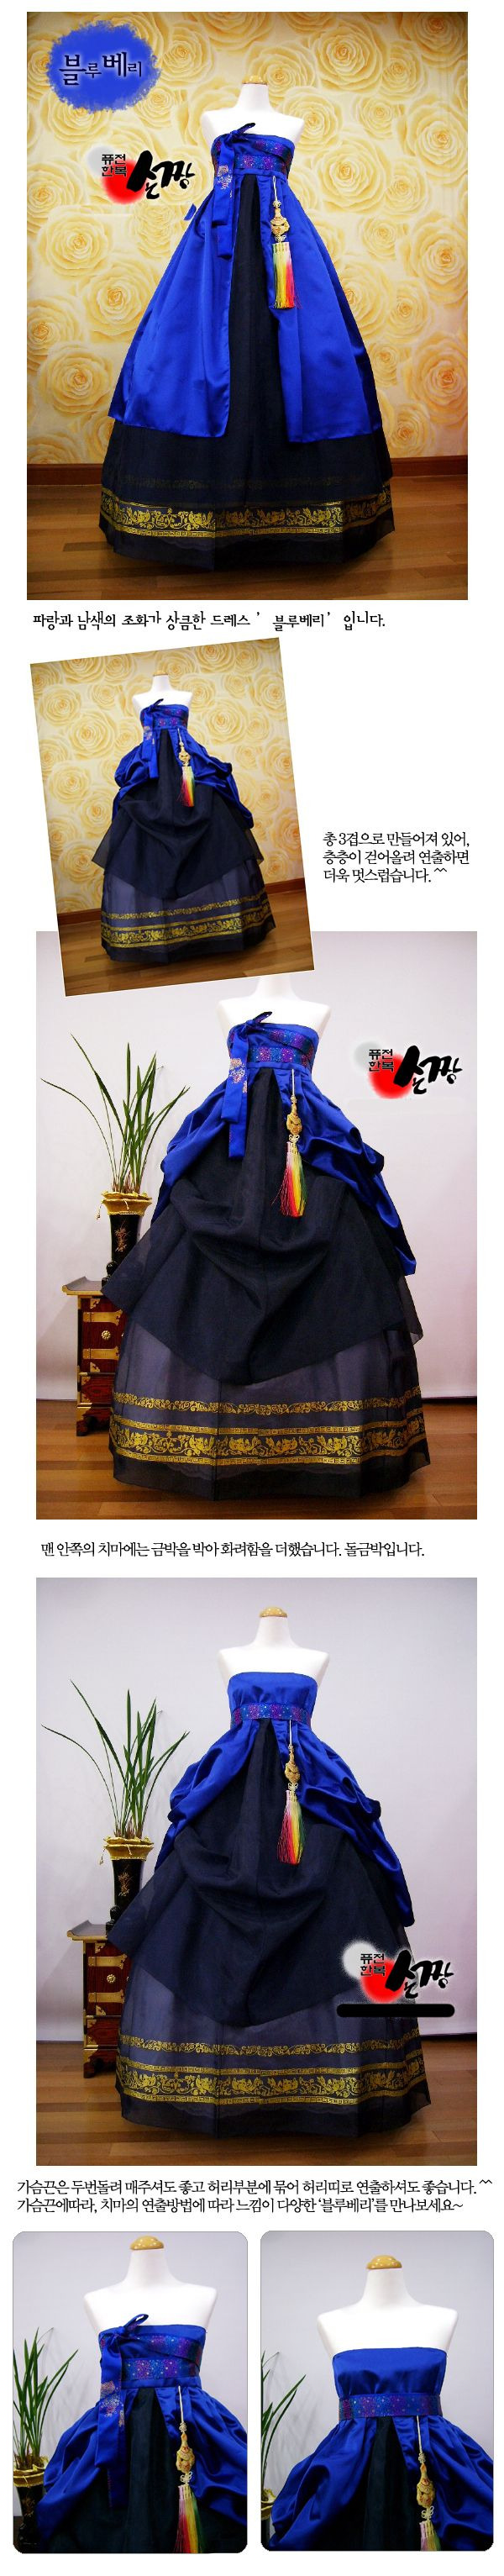 I like the variations and the royal blue color you can do with this!:)